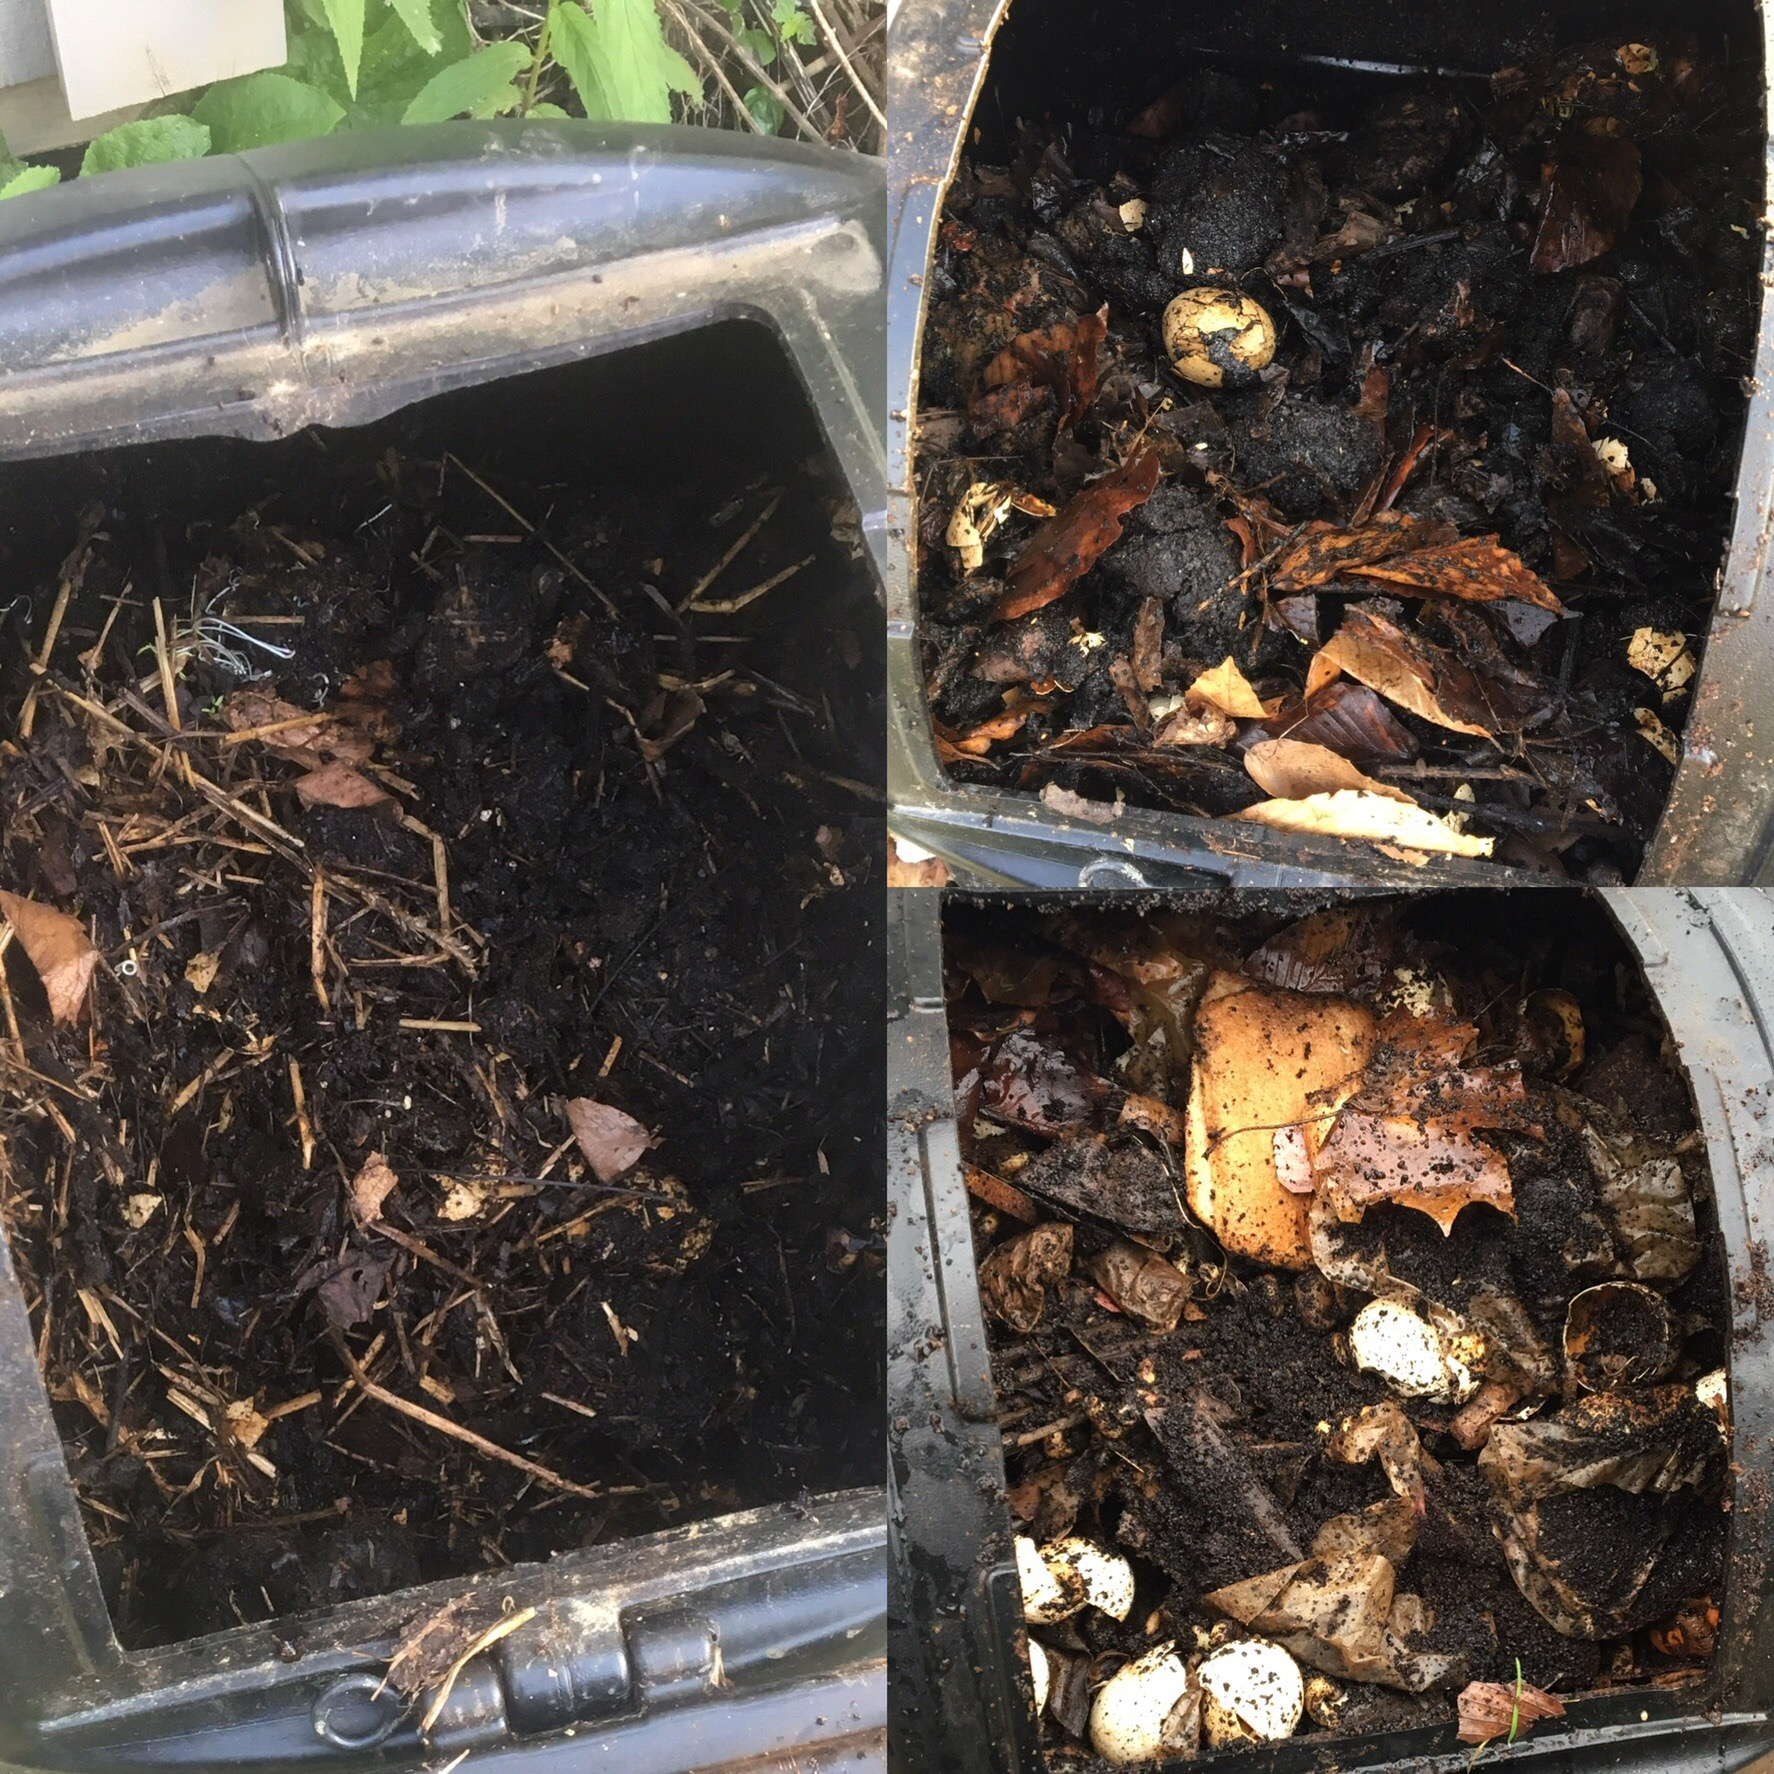 My compost July 21 (left), on April 15 (top) and December 26 (bottom).